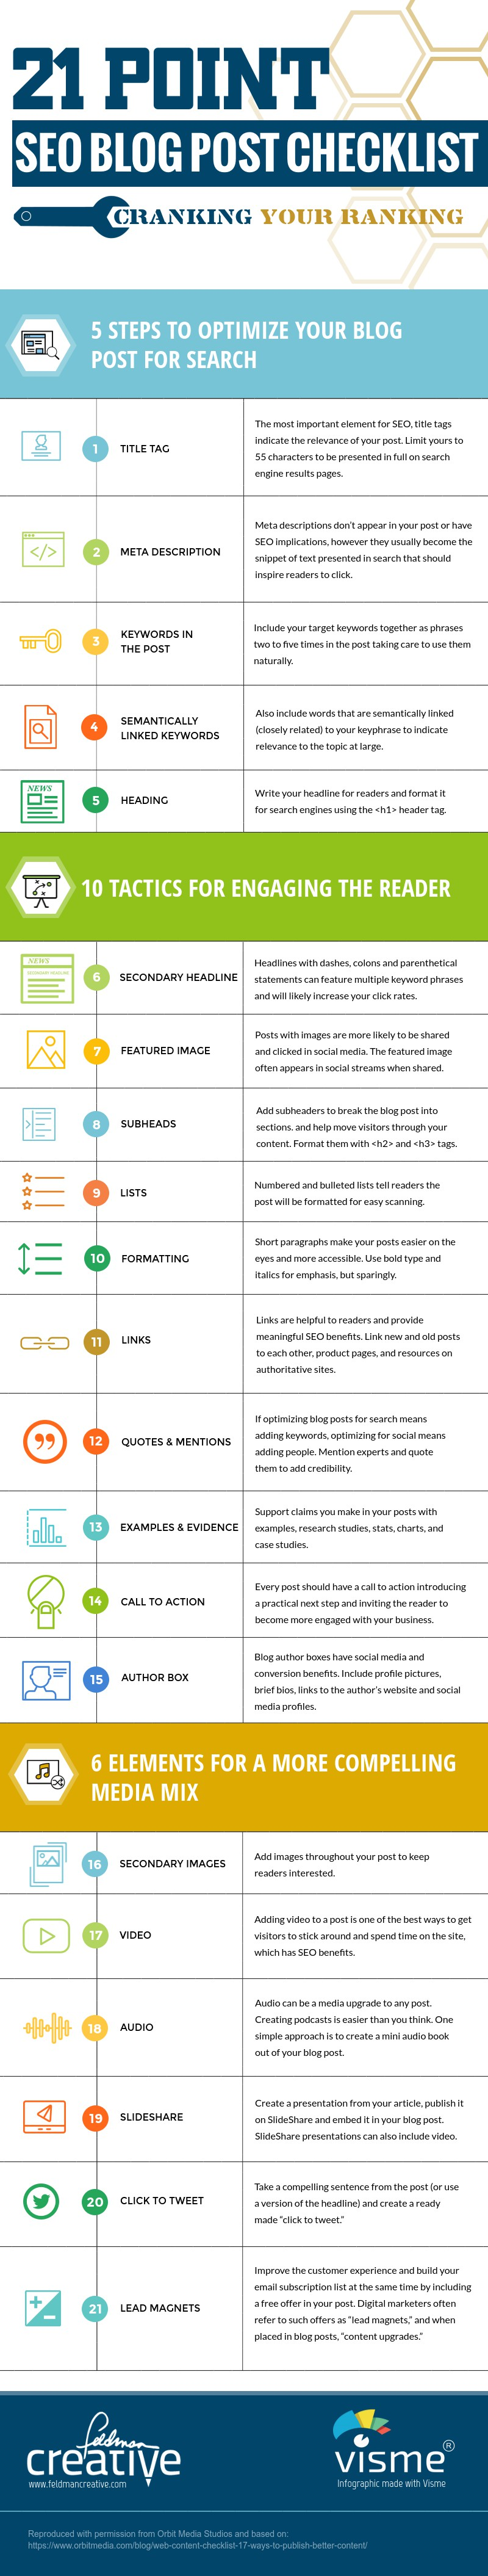 SEO_Blog_Post_Checklist